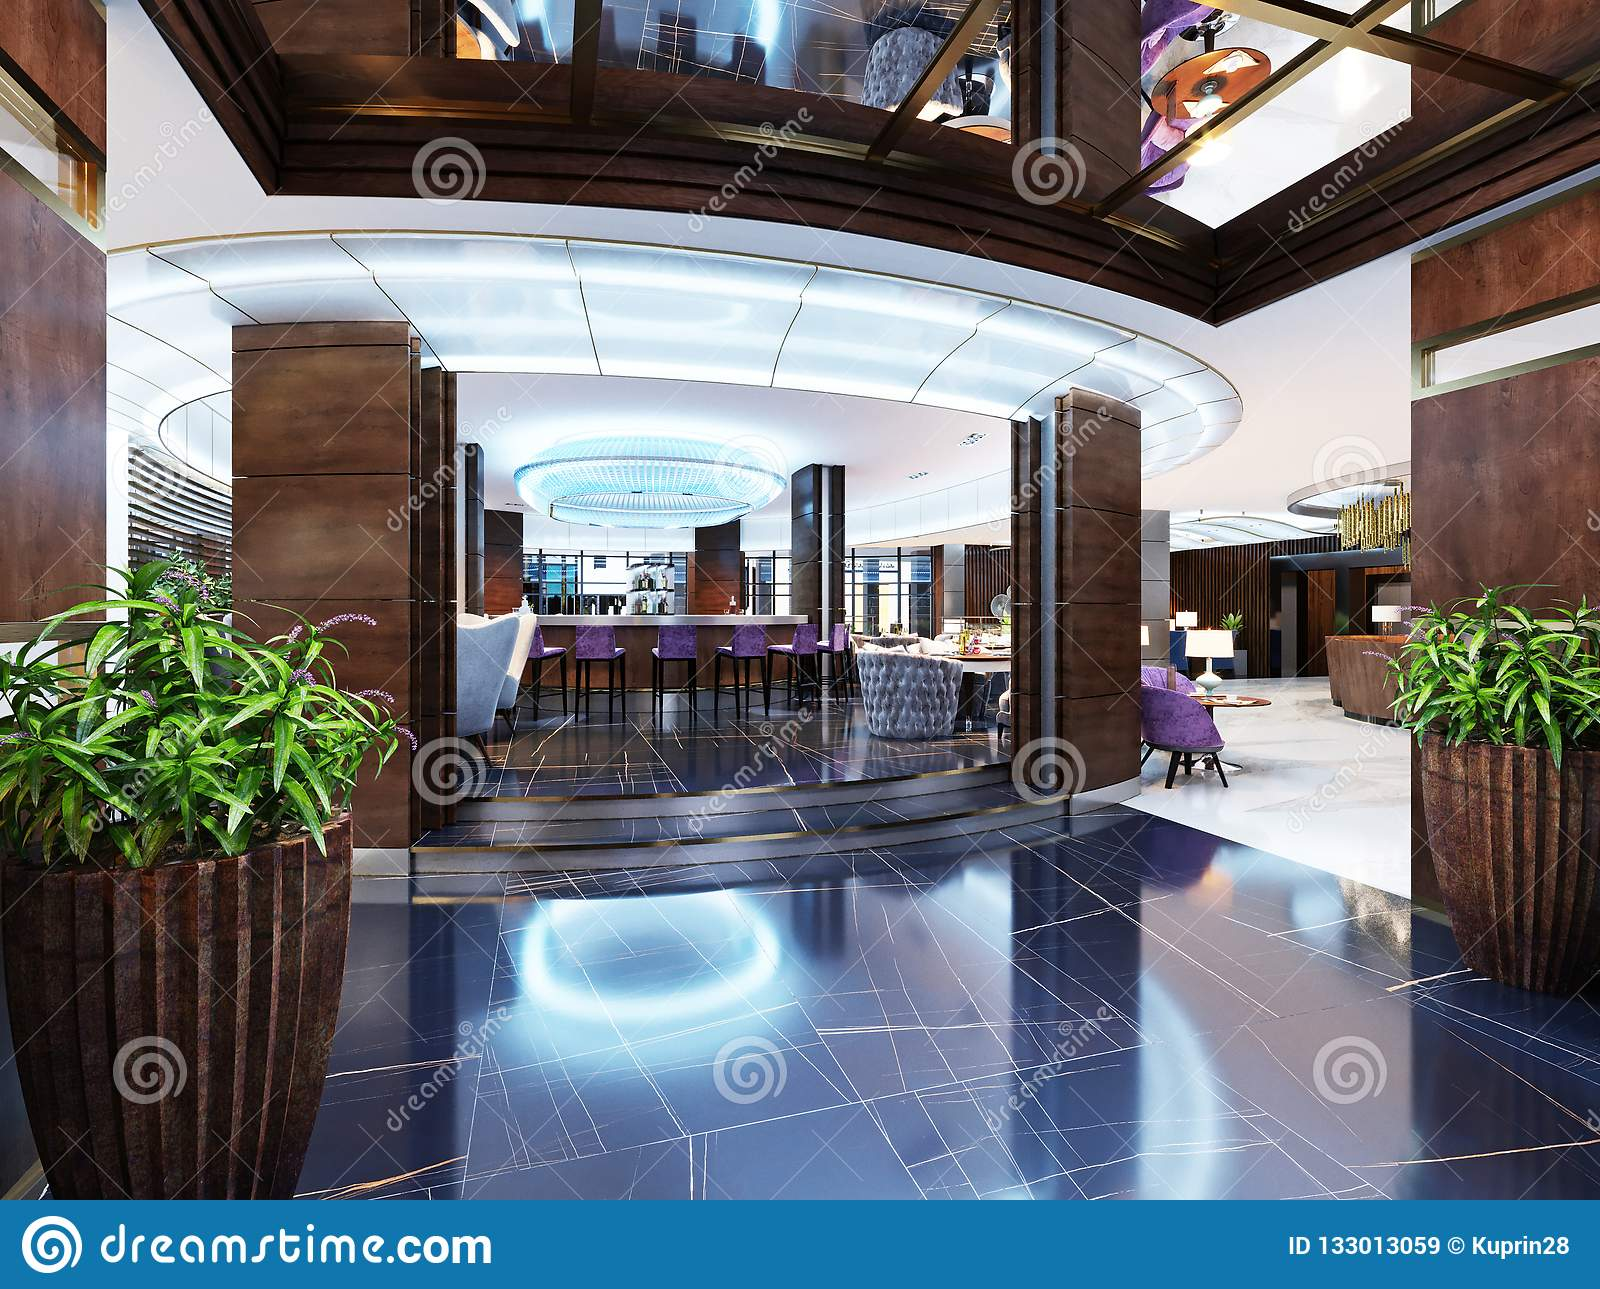 the entrance to the bar is a restaurant of a luxury hotel in a rh dreamstime com modern style hotel london